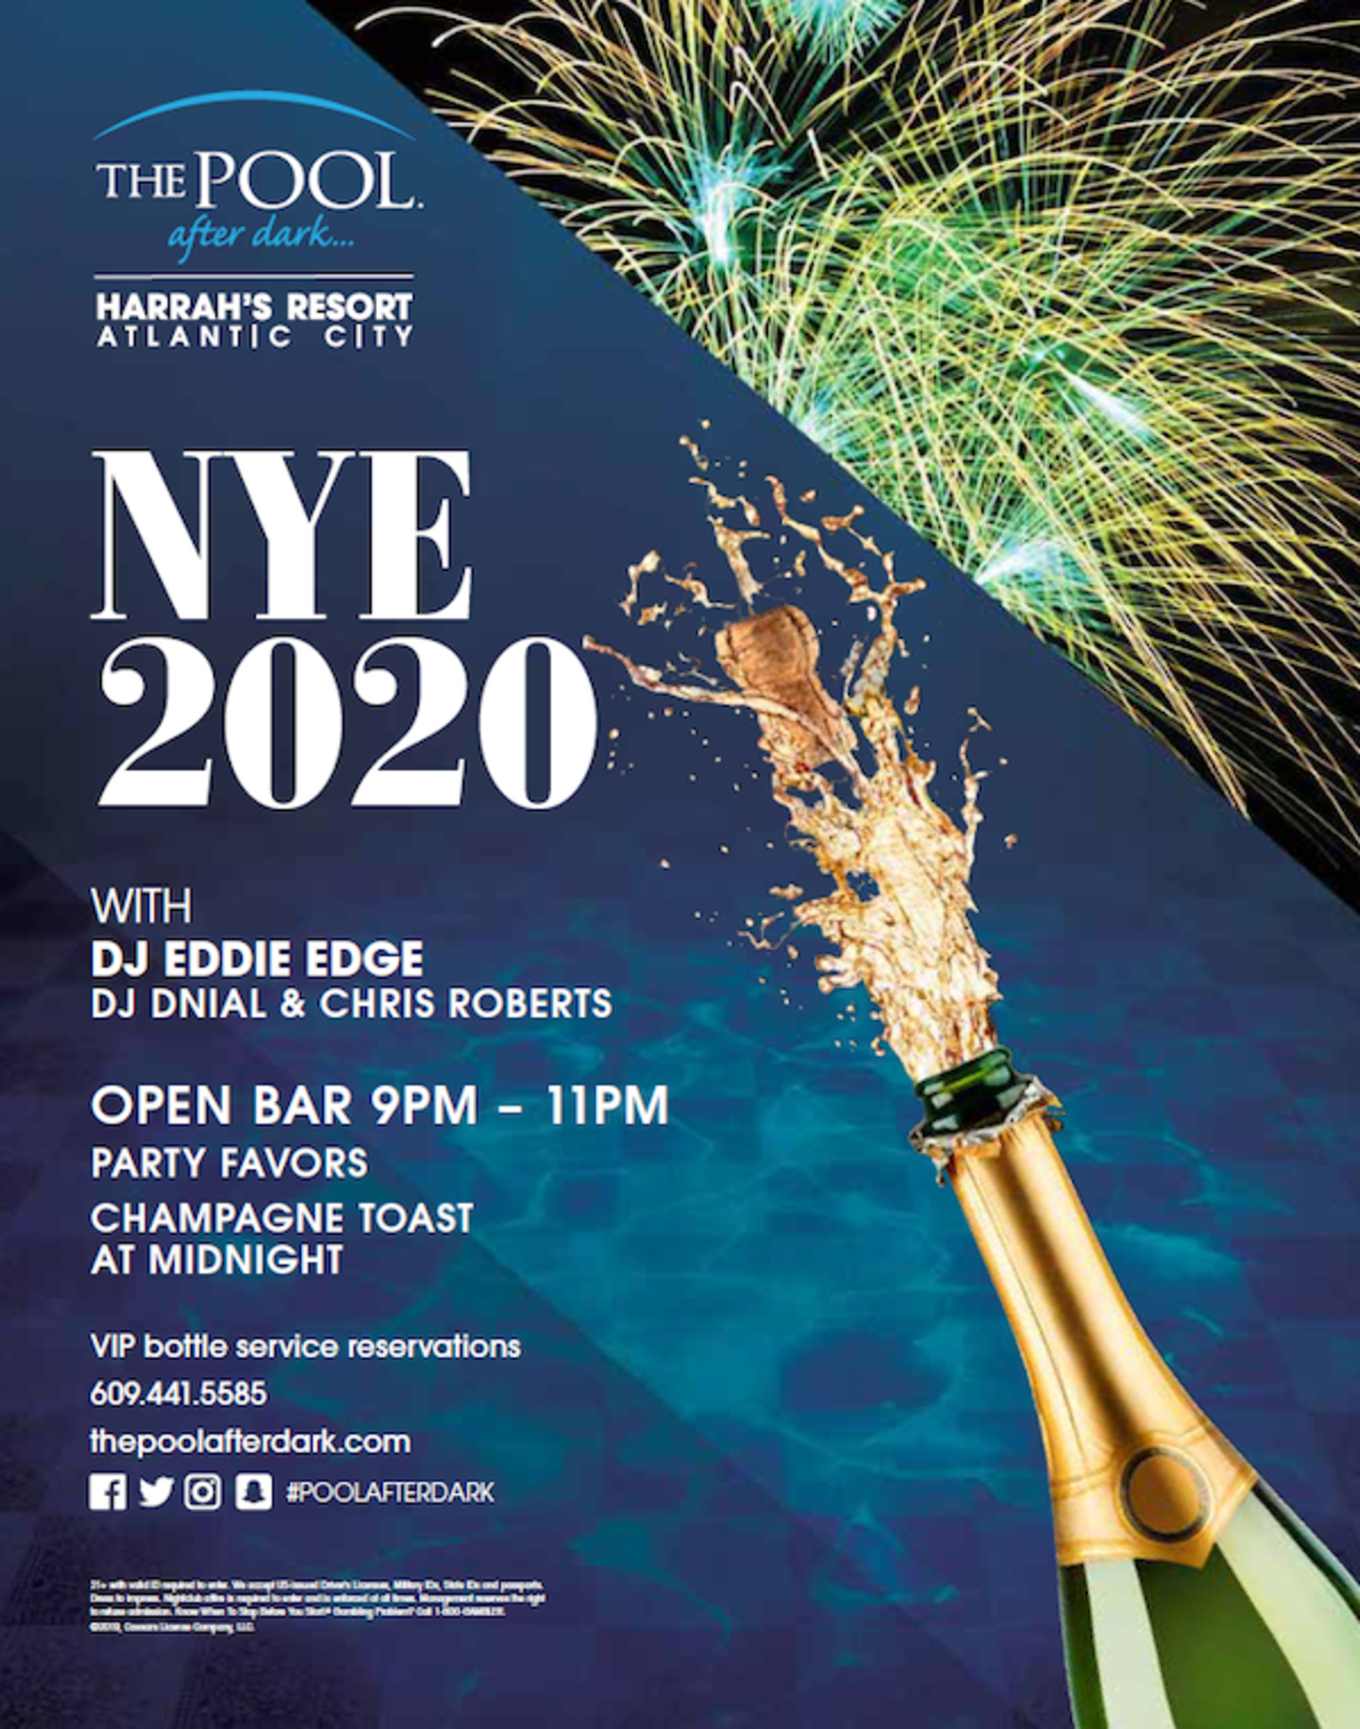 Austin New Years Eve 2020.New Years Eve 2020 Tickets The Pool After Dark Atlantic